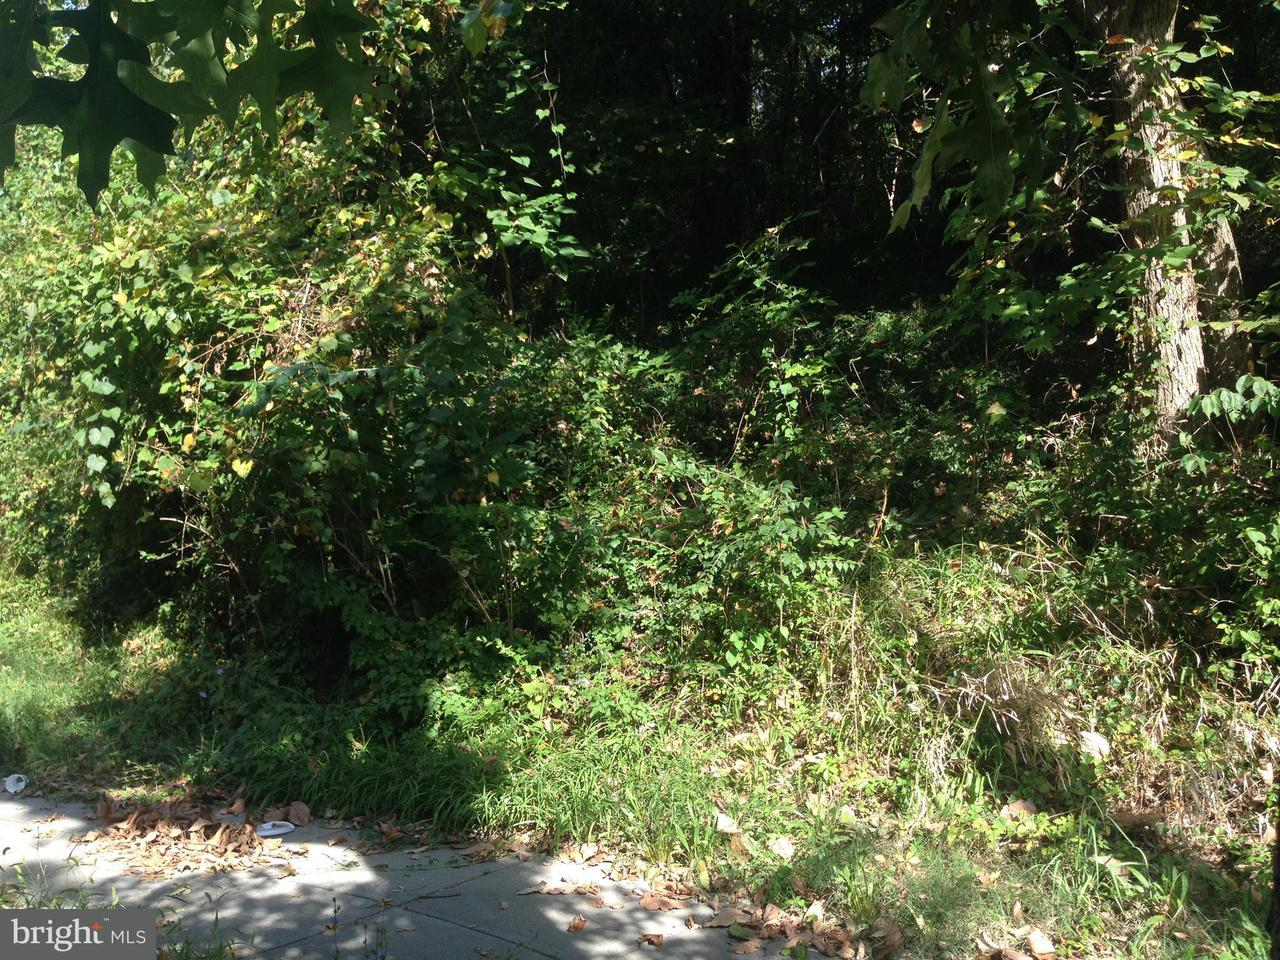 Land for Sale at 2549 Pomeroy Rd Se 2549 Pomeroy Rd Se Washington, District Of Columbia 20020 United States